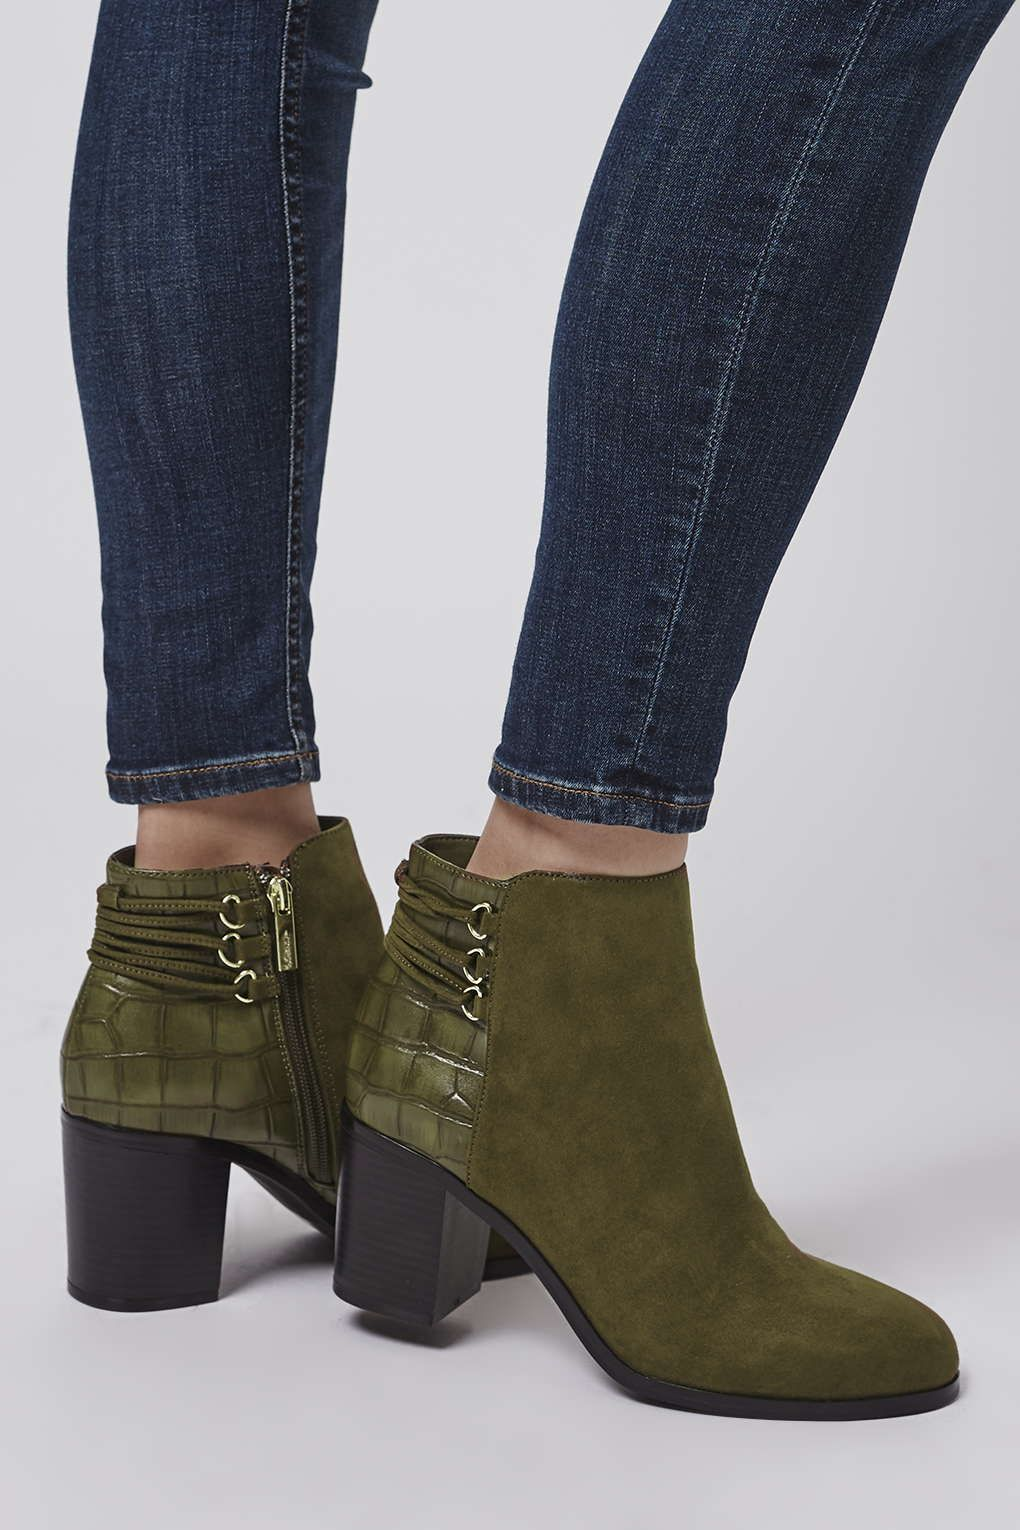 Back lace up boots - Bind Back Lace Boots New In